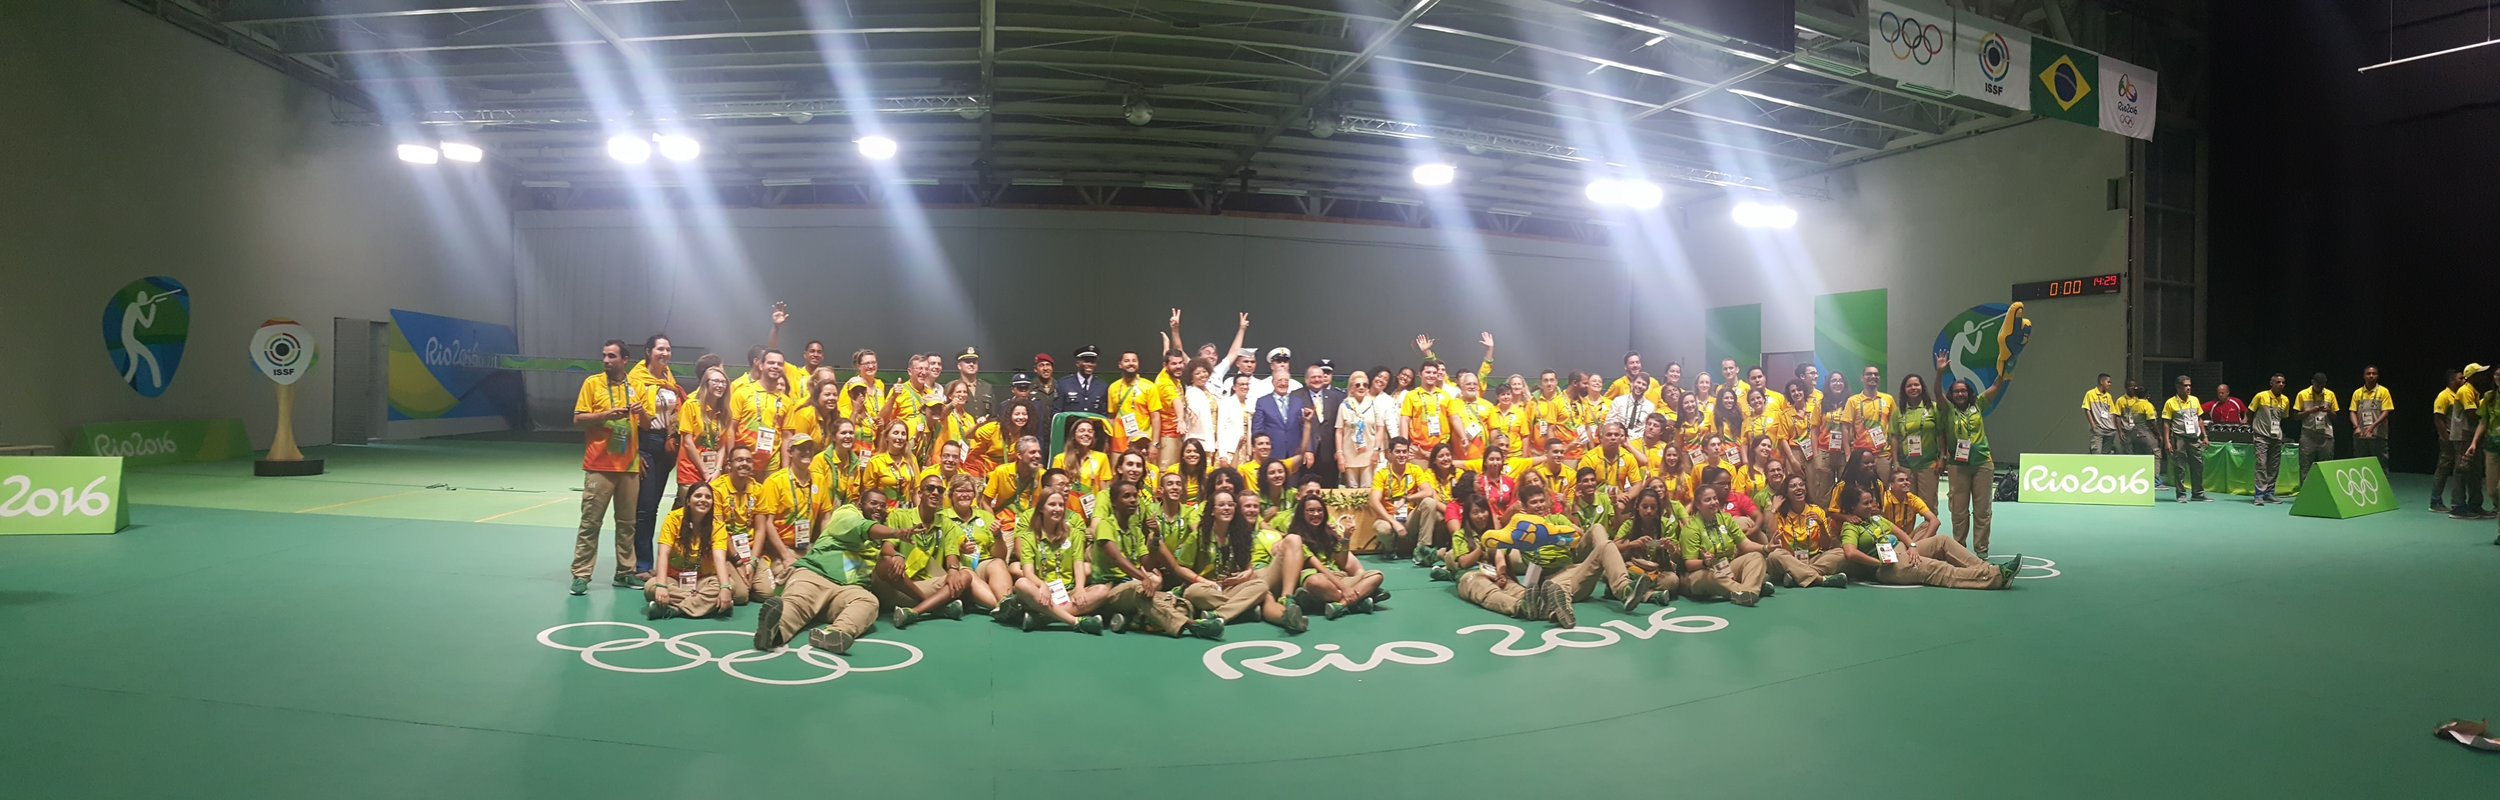 The Volunteers at the Shooting Range Rio 2016